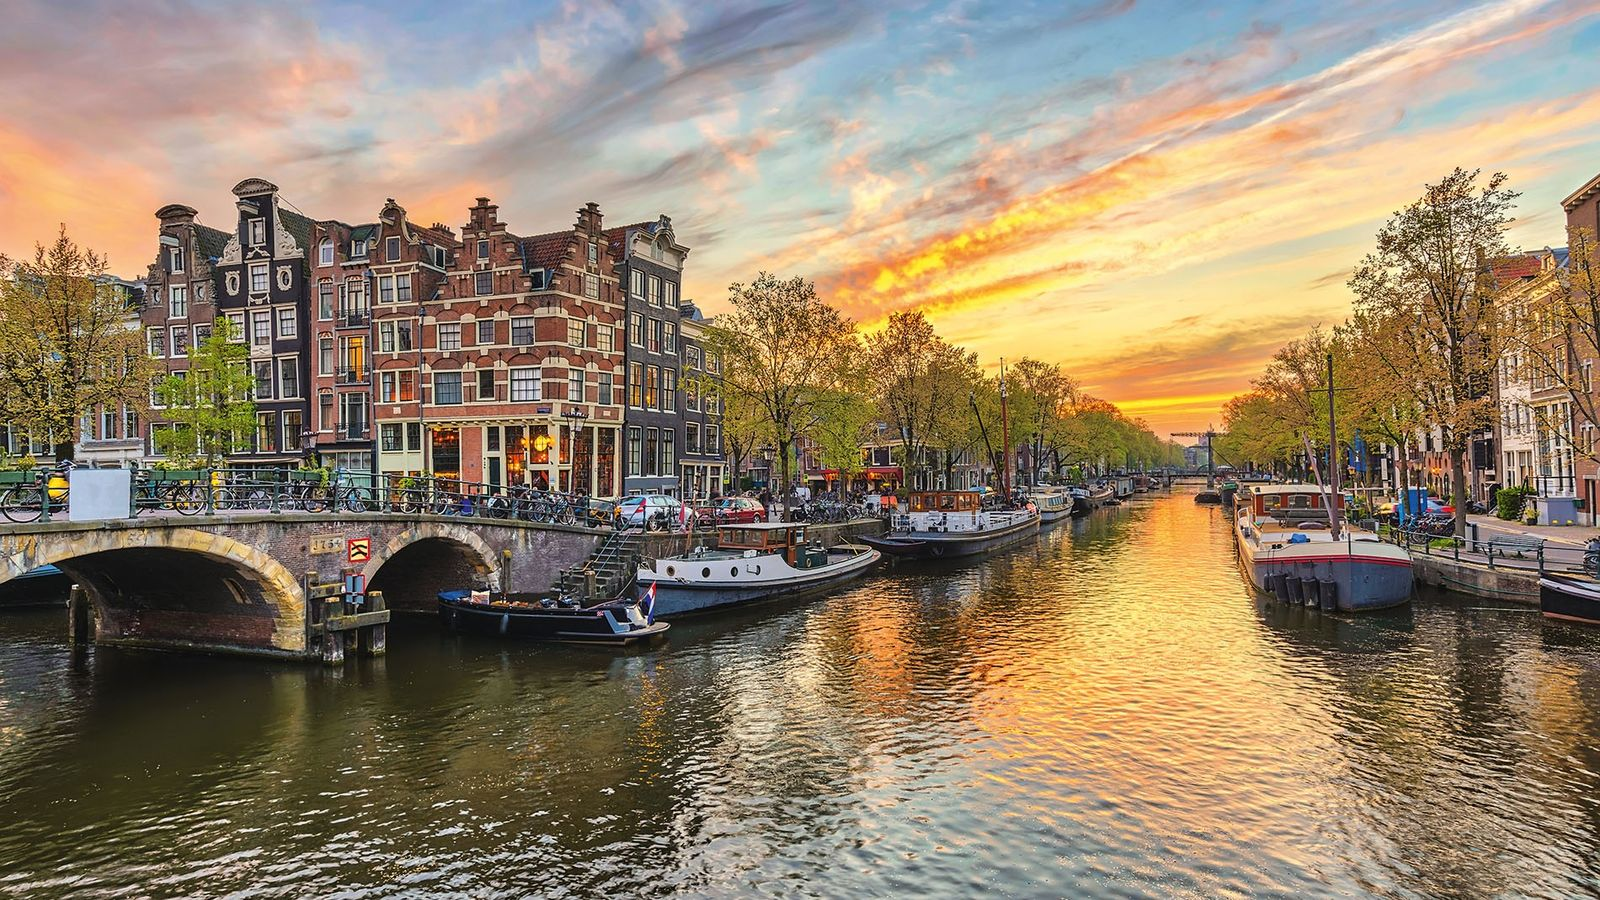 Amsterdam is acitythat continues toreinvent itself, with lesser-visited districts burgeoning in light of a slew of ...